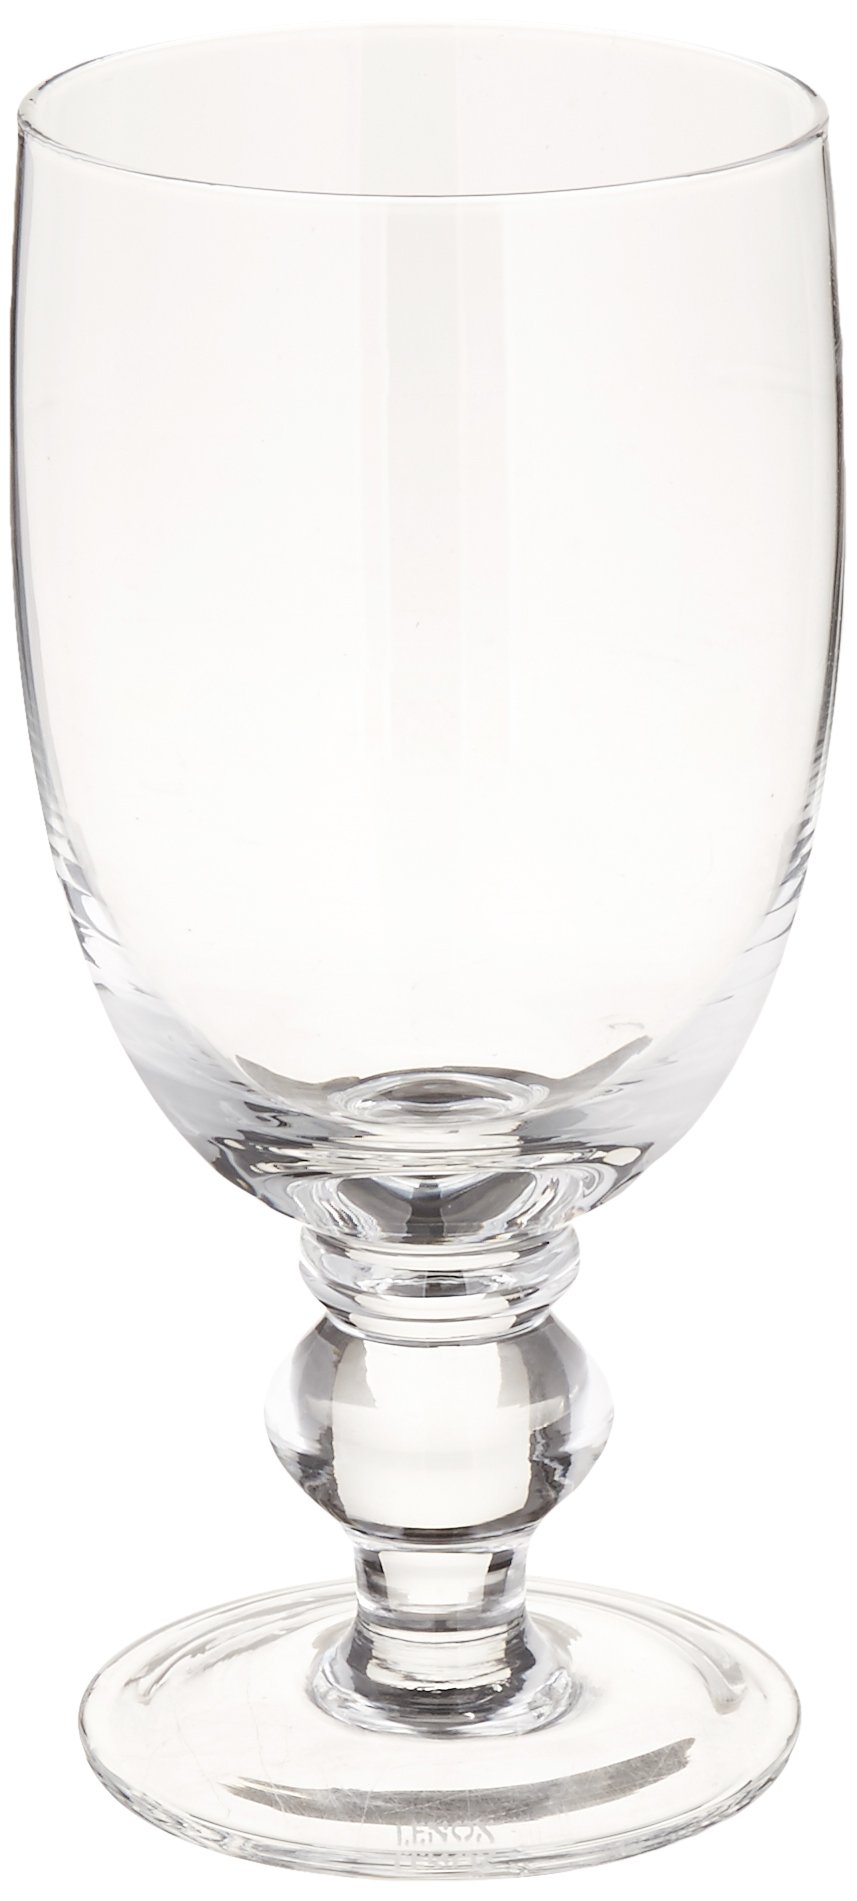 Lenox 857765 Tuscany Classics Casual All Purpose Glasses (Set of 4), Clear